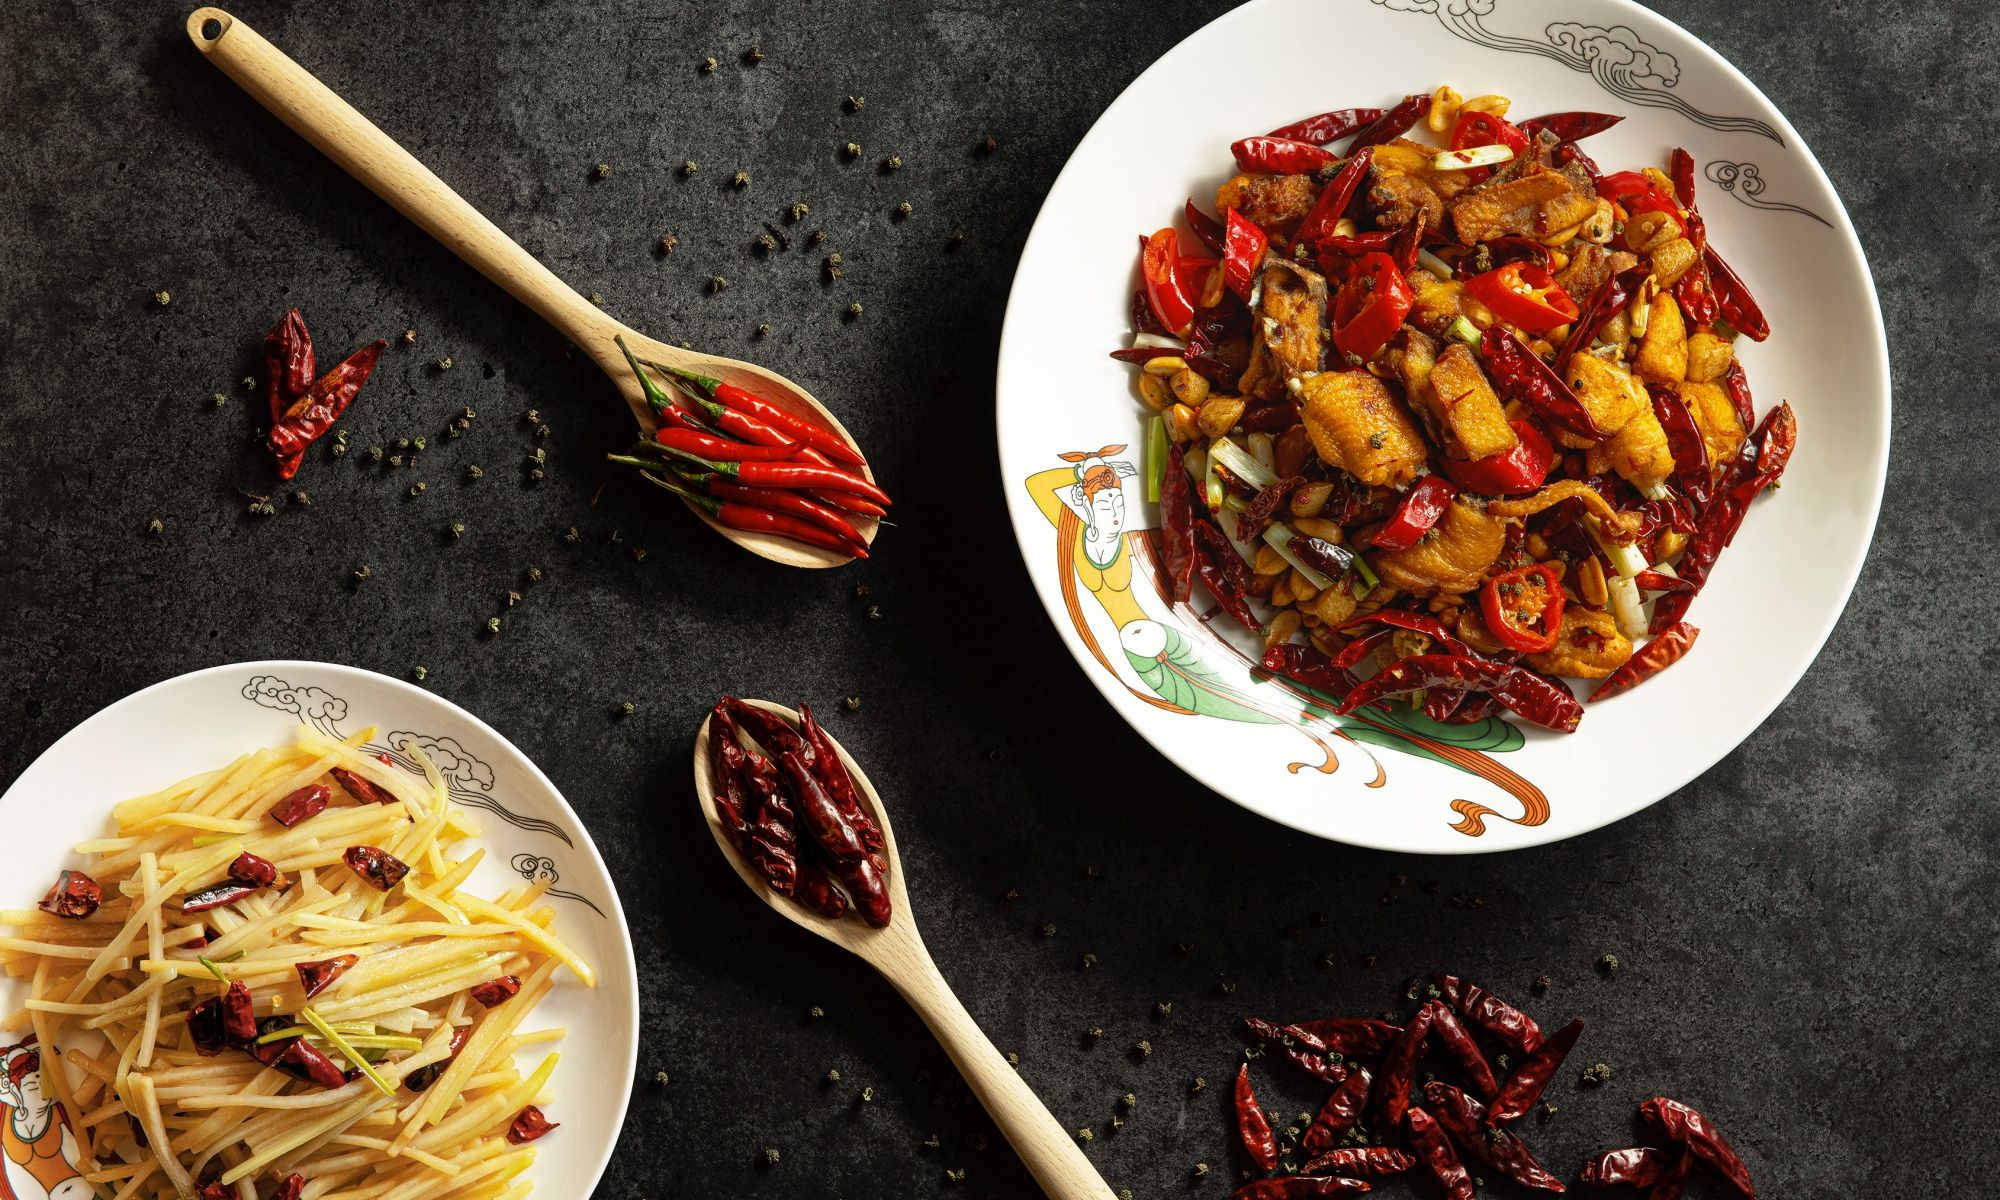 Dynasty Warms Up This Winter Season With New Spicy and Sour Specialties